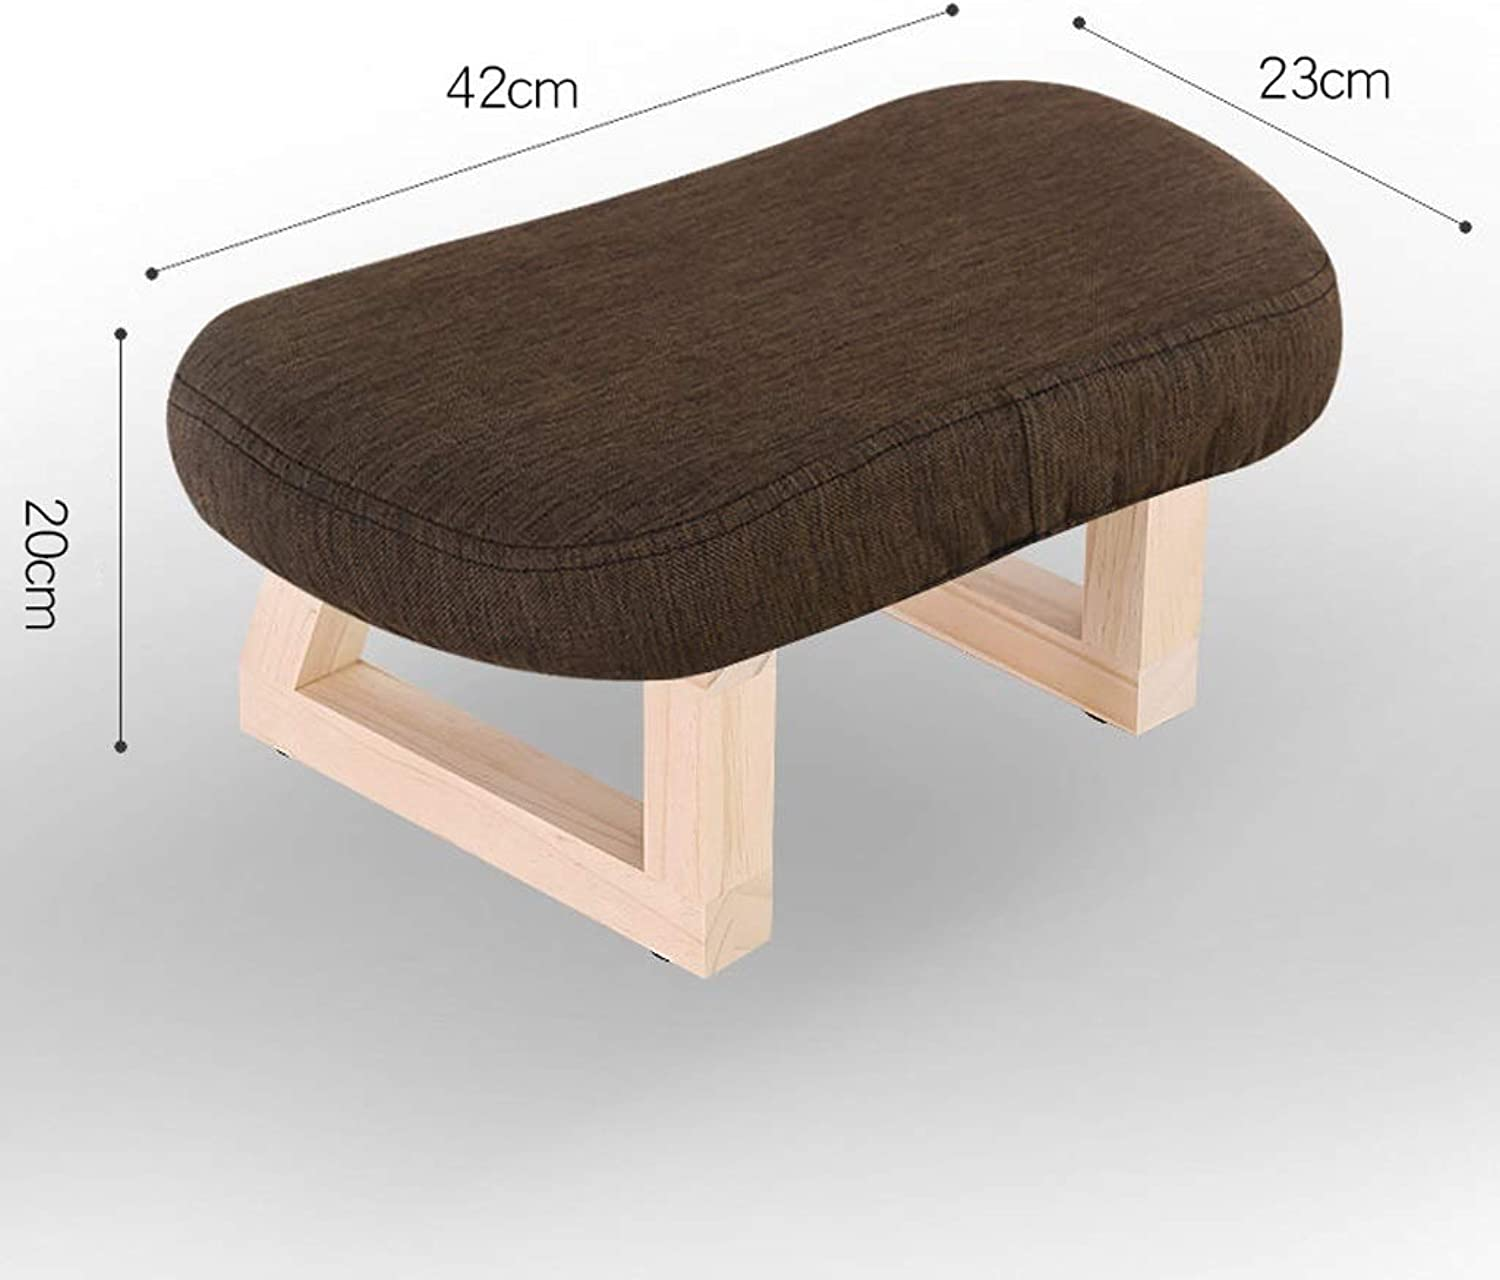 LLSDLS Solid Wood Stool Living Room Creative Retro Small Bench Home Adult Wear shoes Stool Sofa Change shoes Stool Fabric Stool (color   Brown)